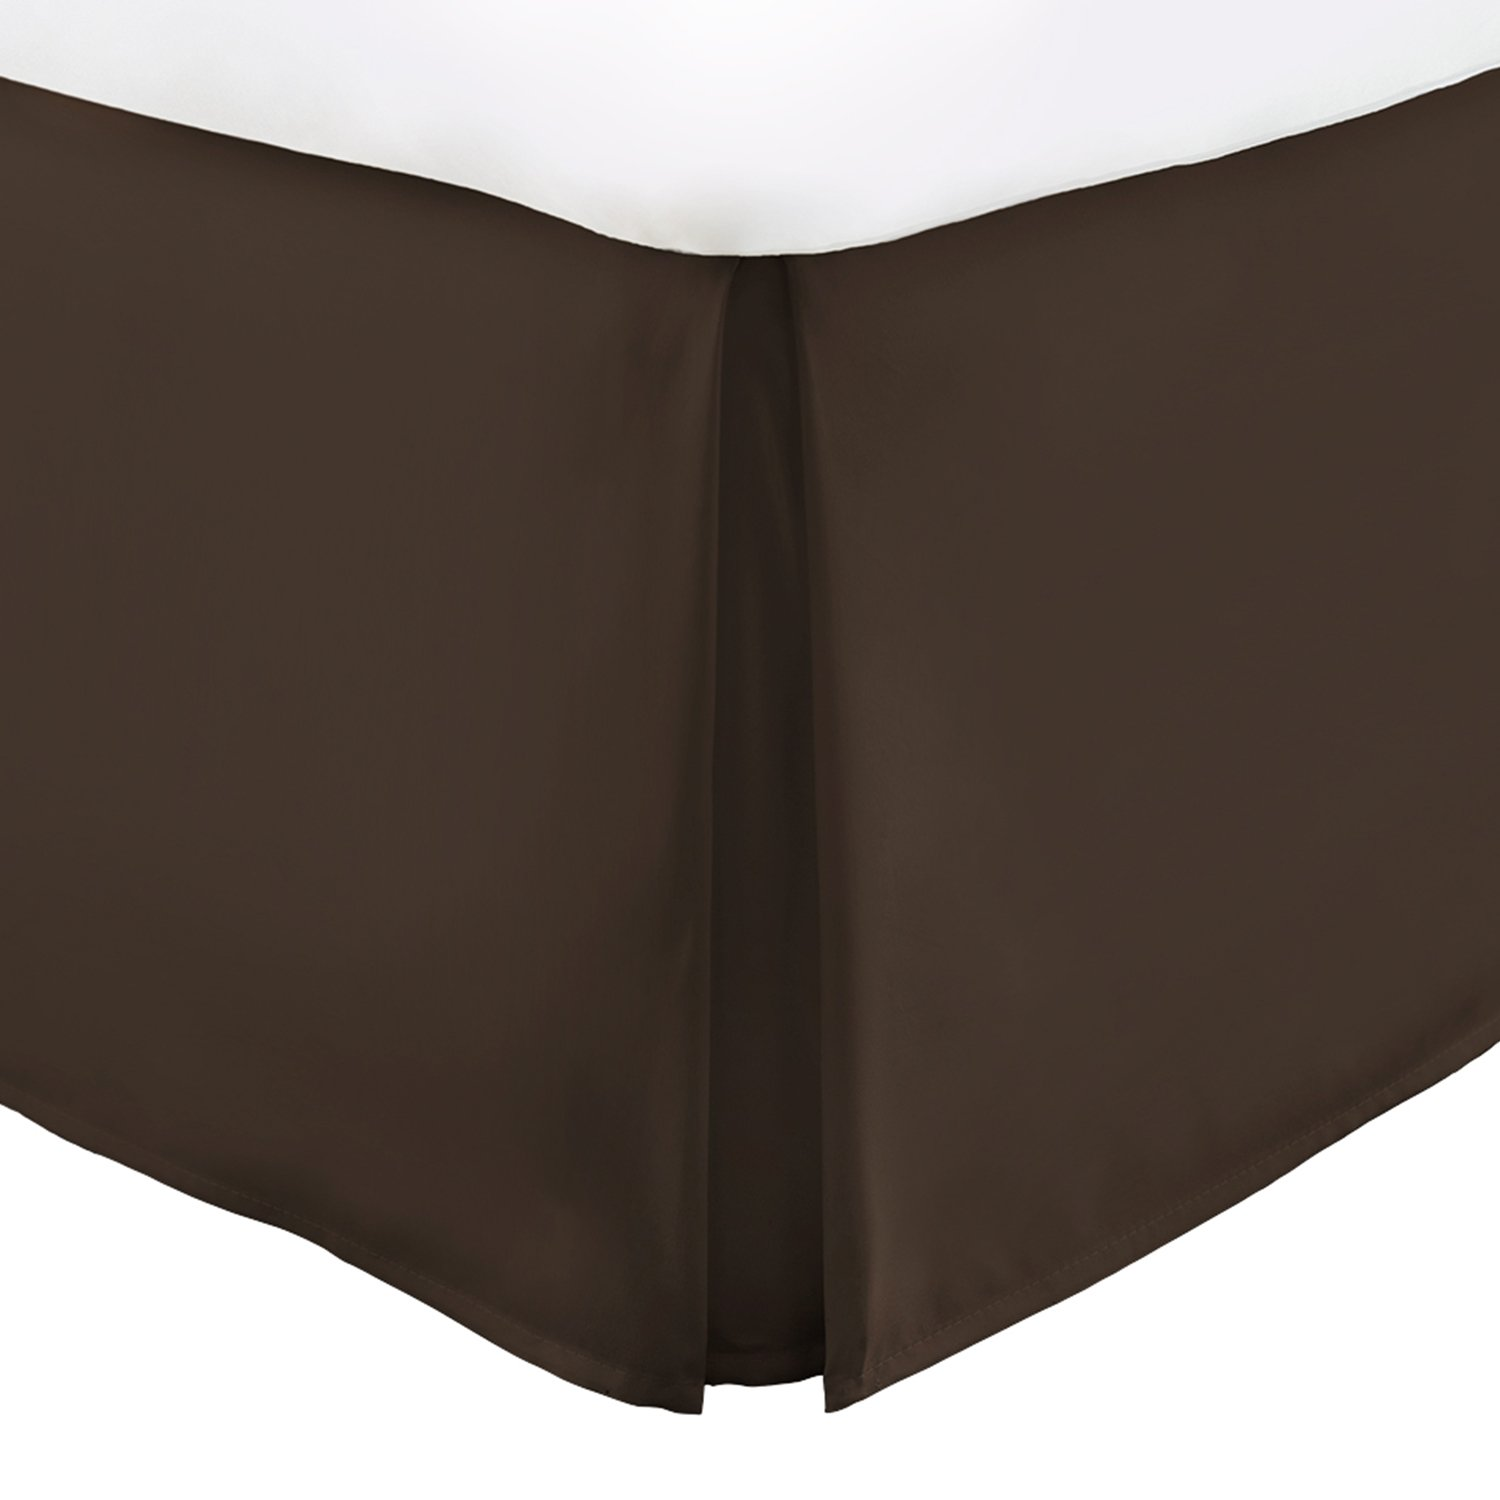 Italian Luxury Hotel Collection Bed Skirt with 15-inch Drop - Double Brushed Microfiber Pleated Dust Ruffle -Chocolate - King